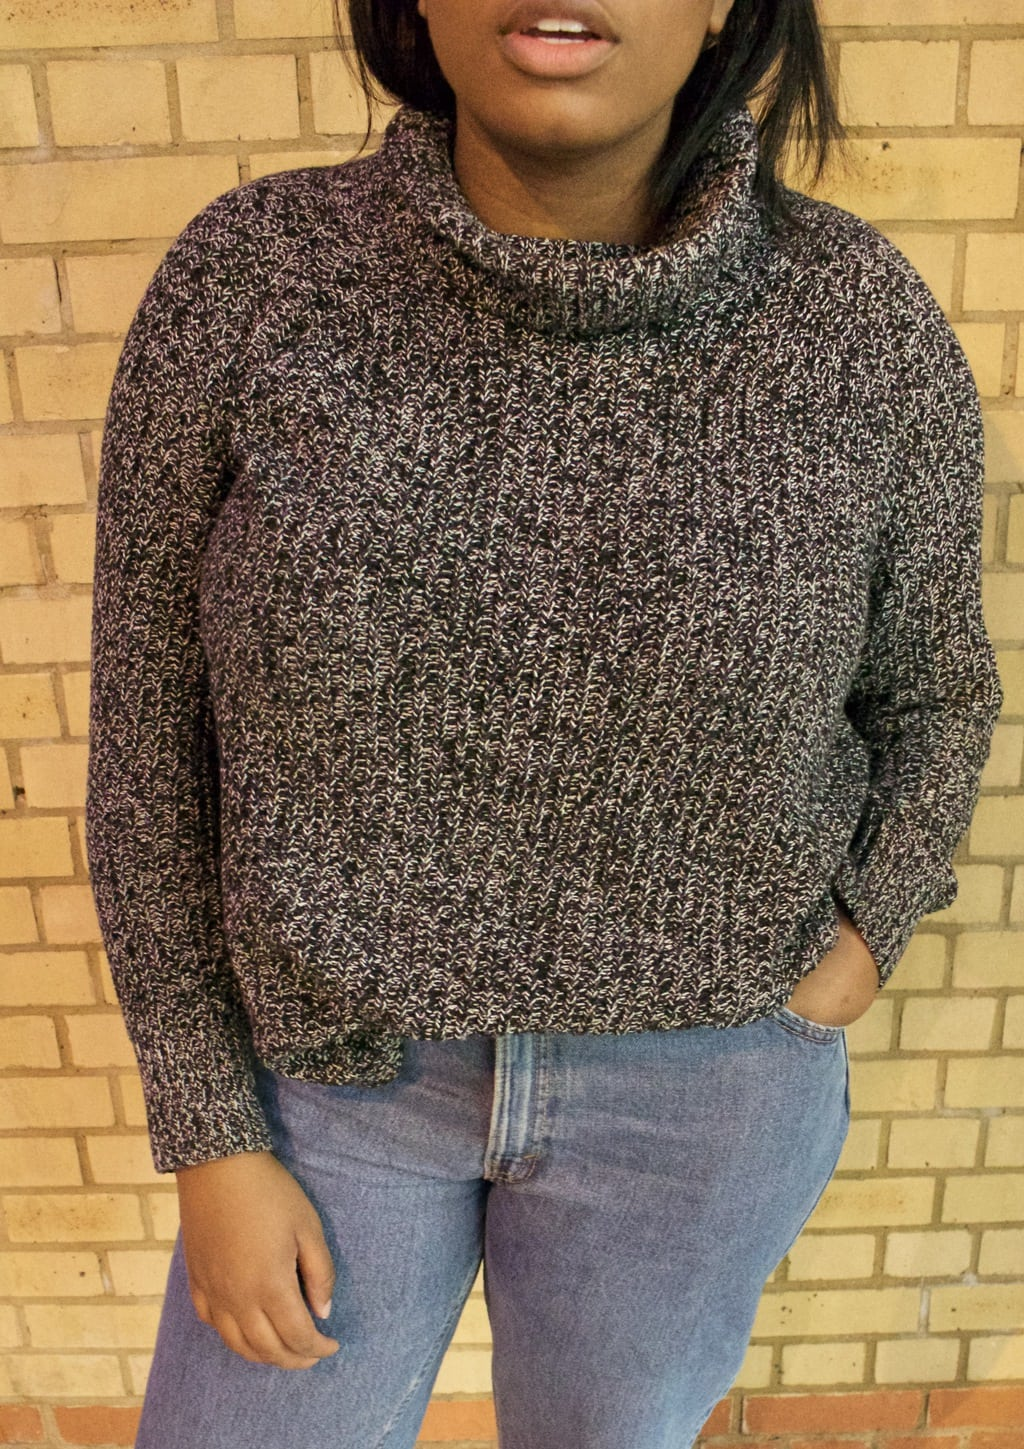 LOC-ASU-Ericah-Sweater